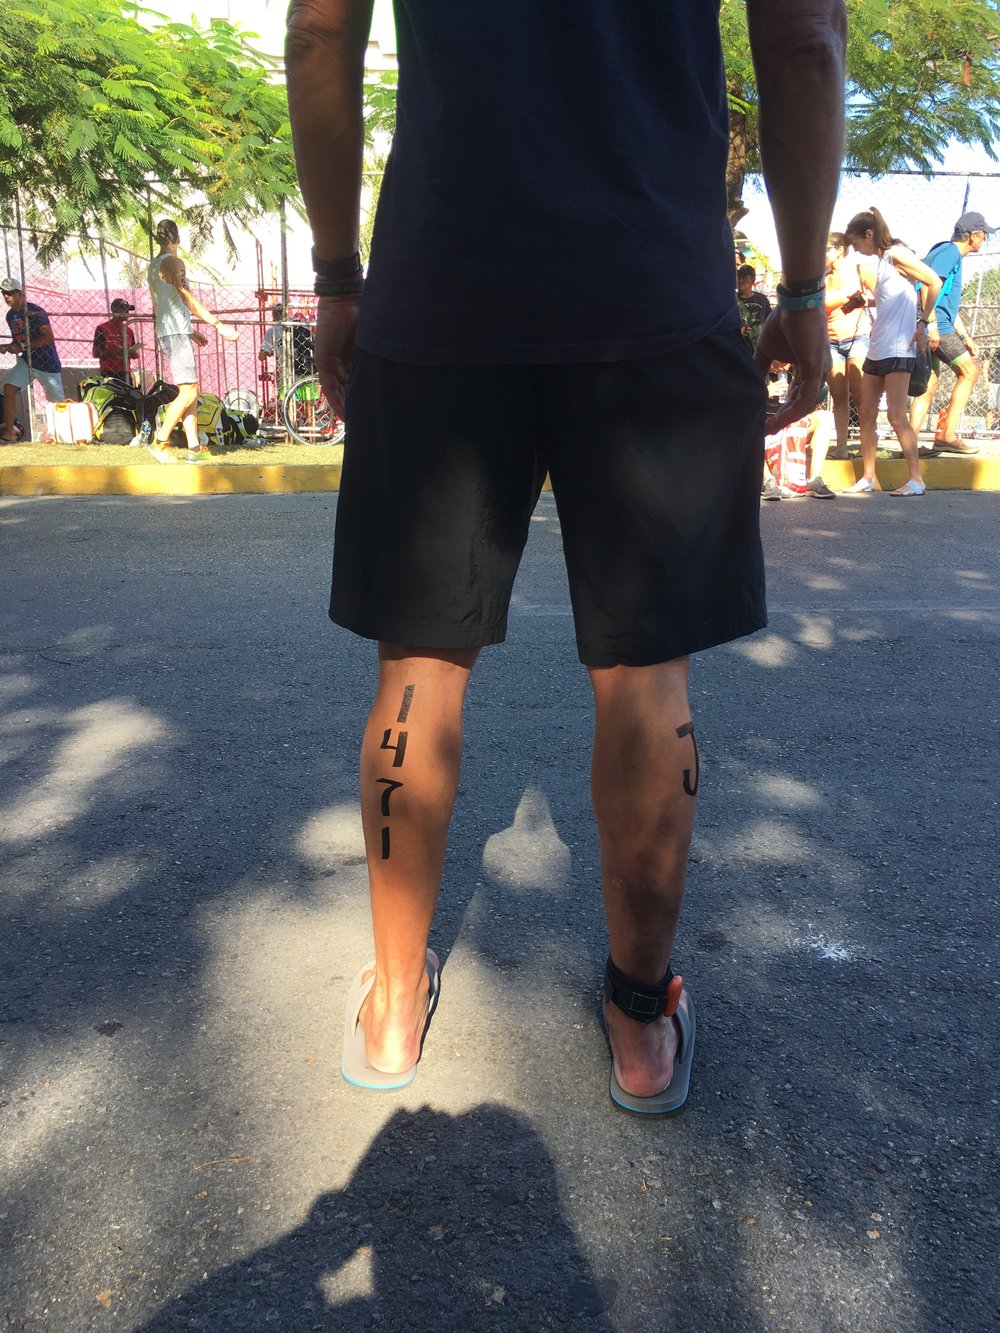 2018 Ironman Mexico